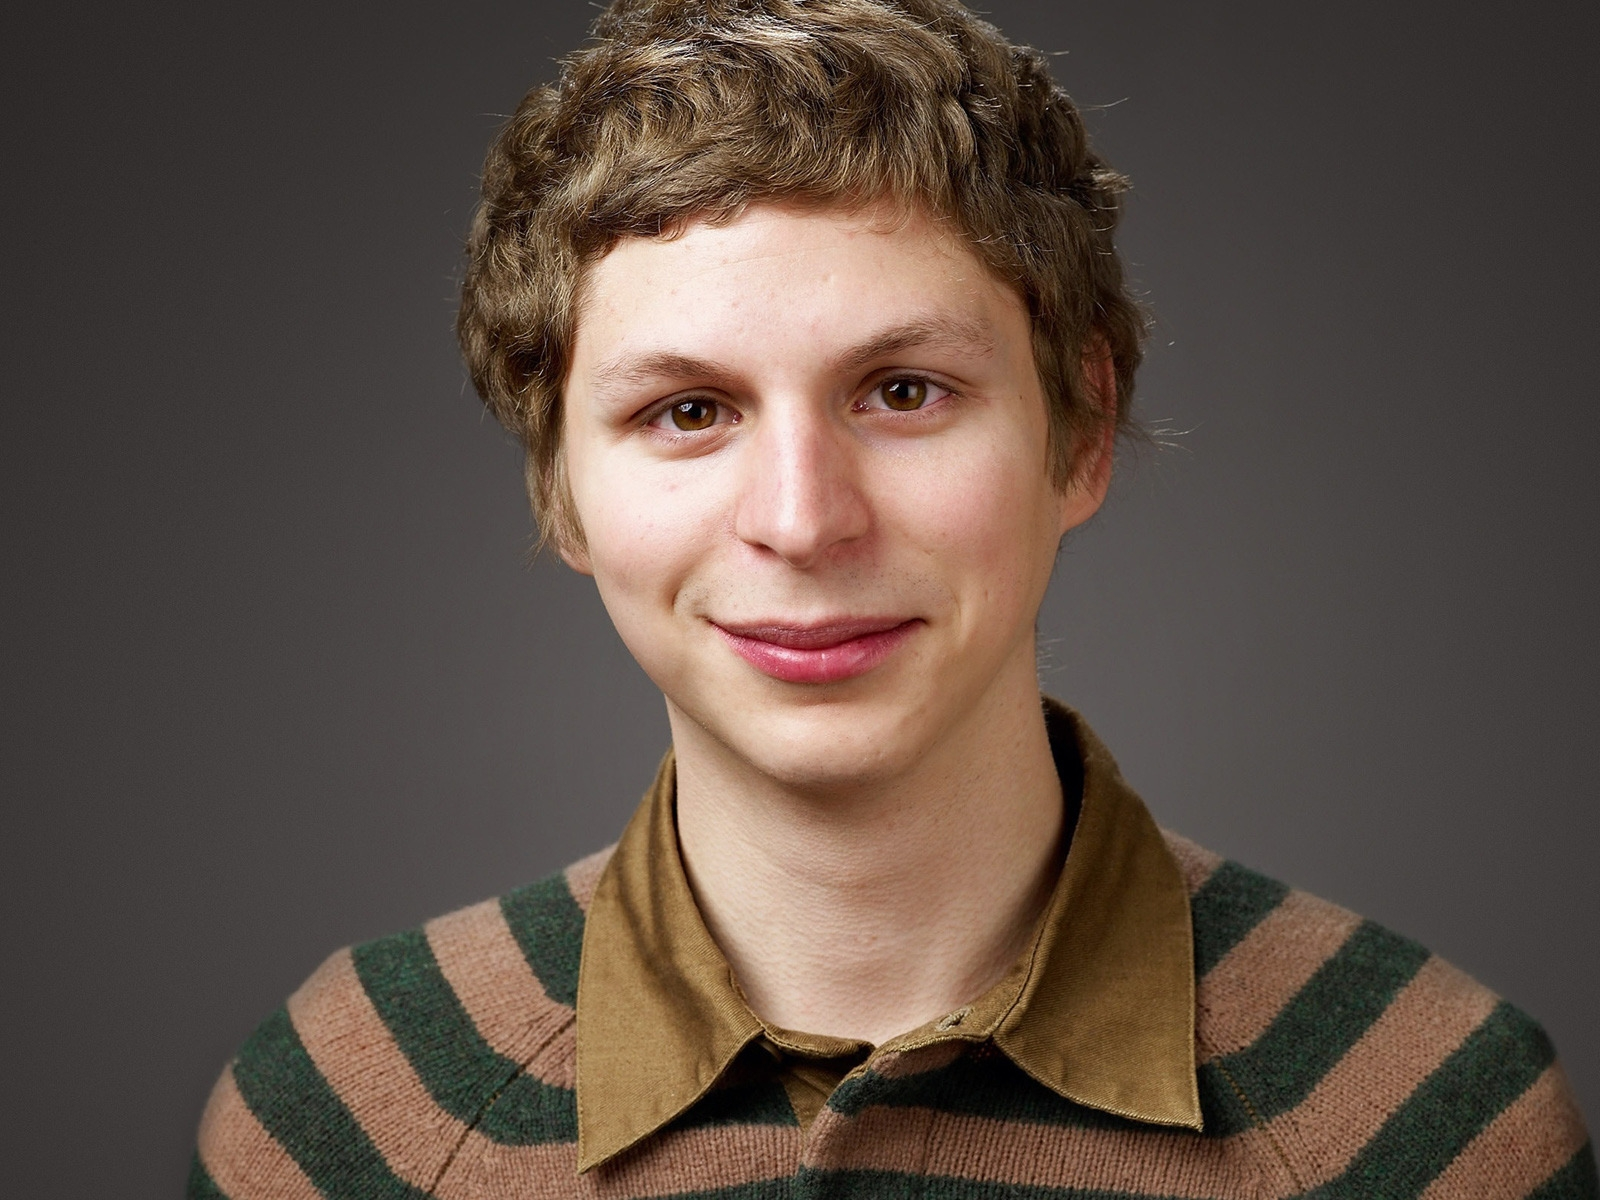 Michael Cera for 1600 x 1200 resolution